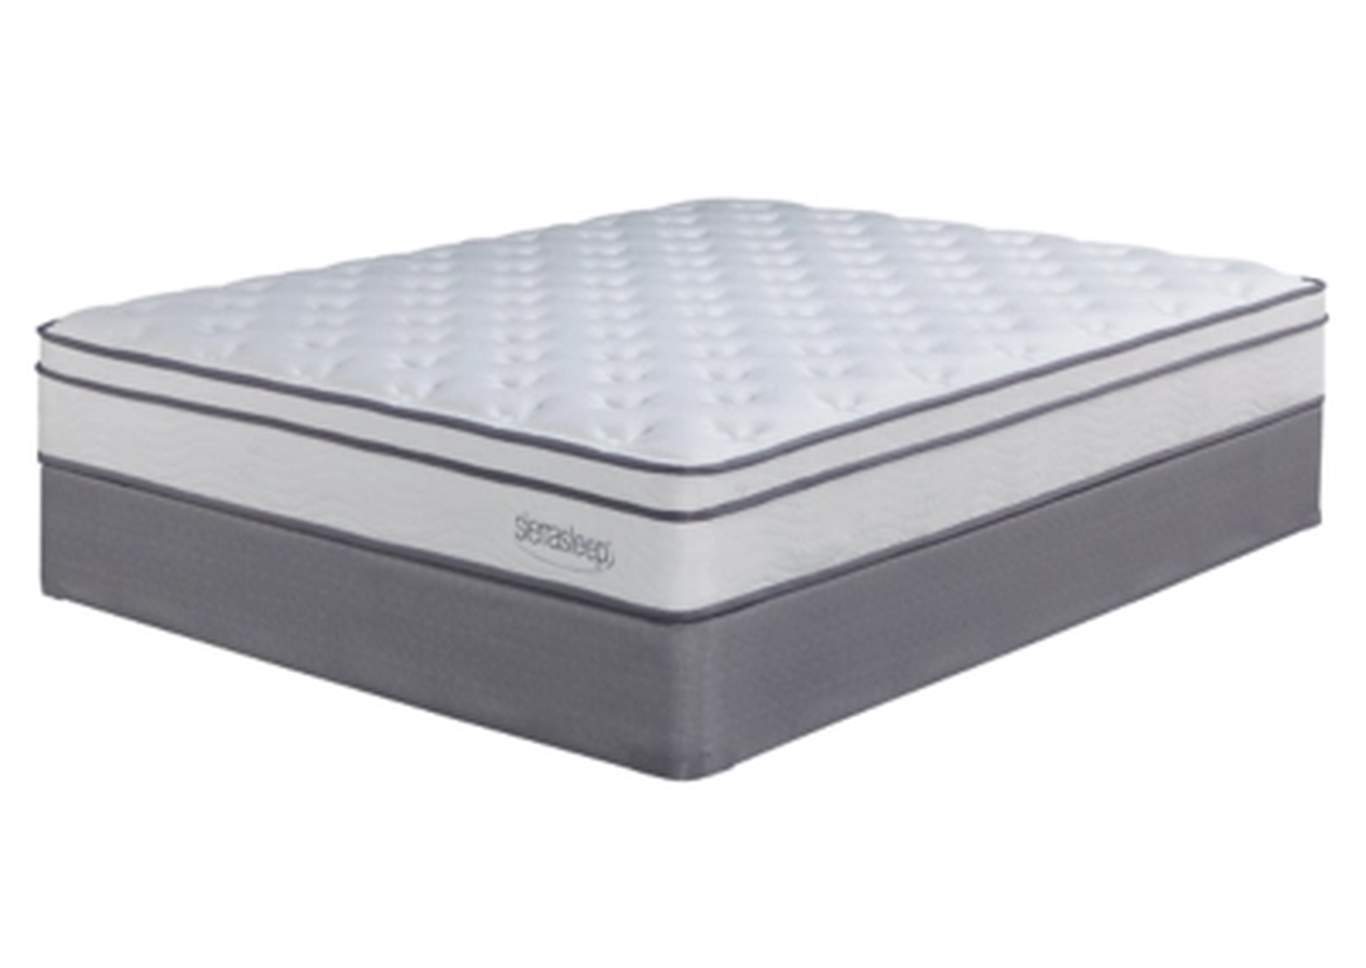 Longs Peak Limited White King Mattress,Sierra Sleep by Ashley